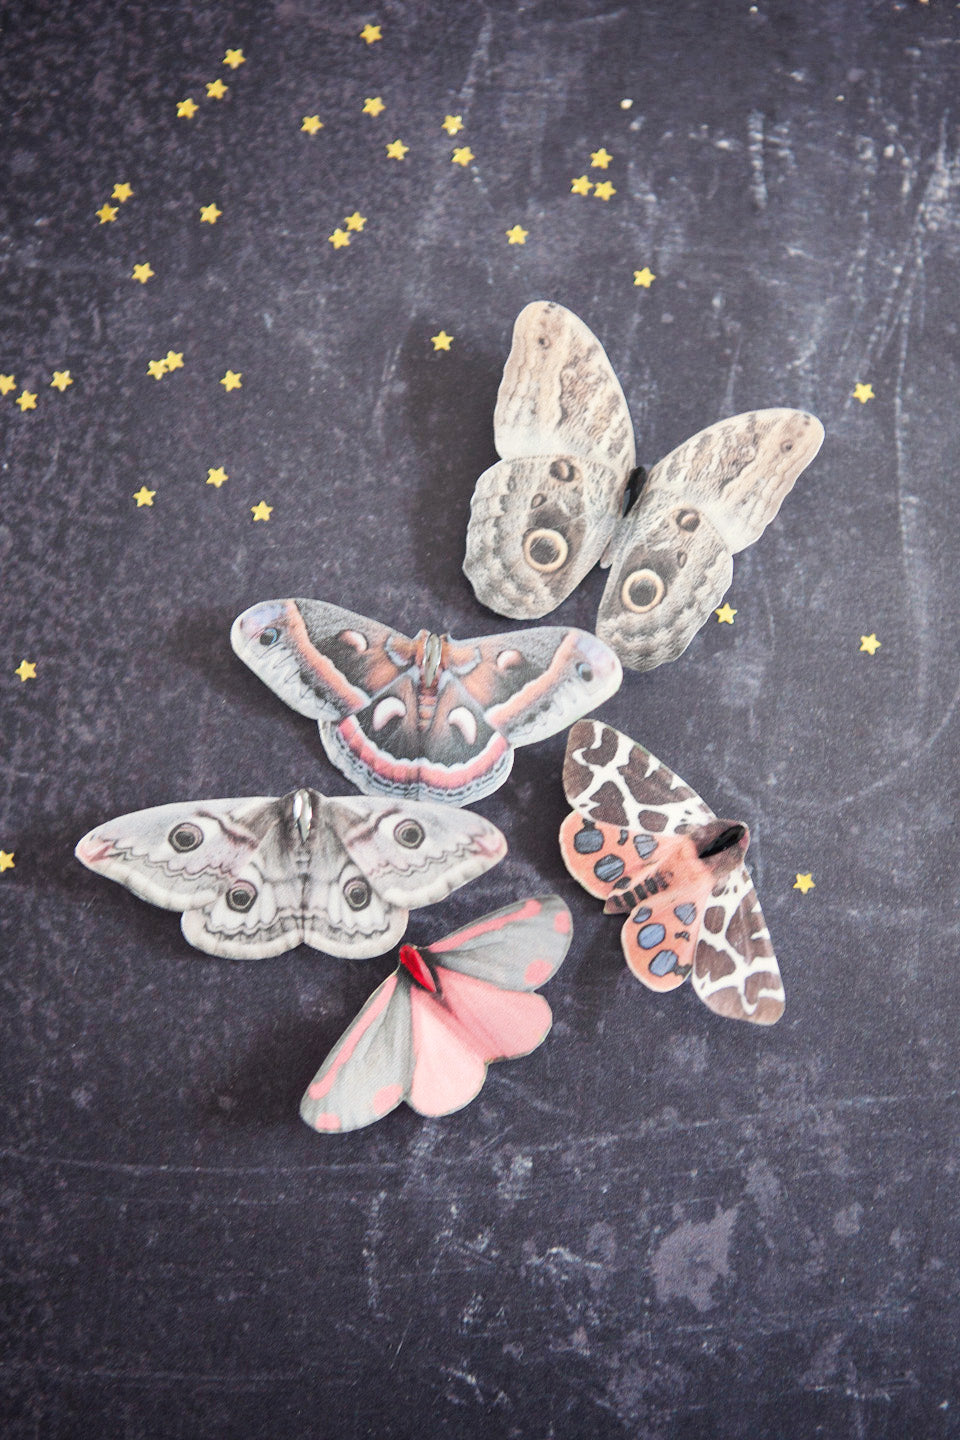 A set of five silk moth hair clips on a black background with tiny golden stars